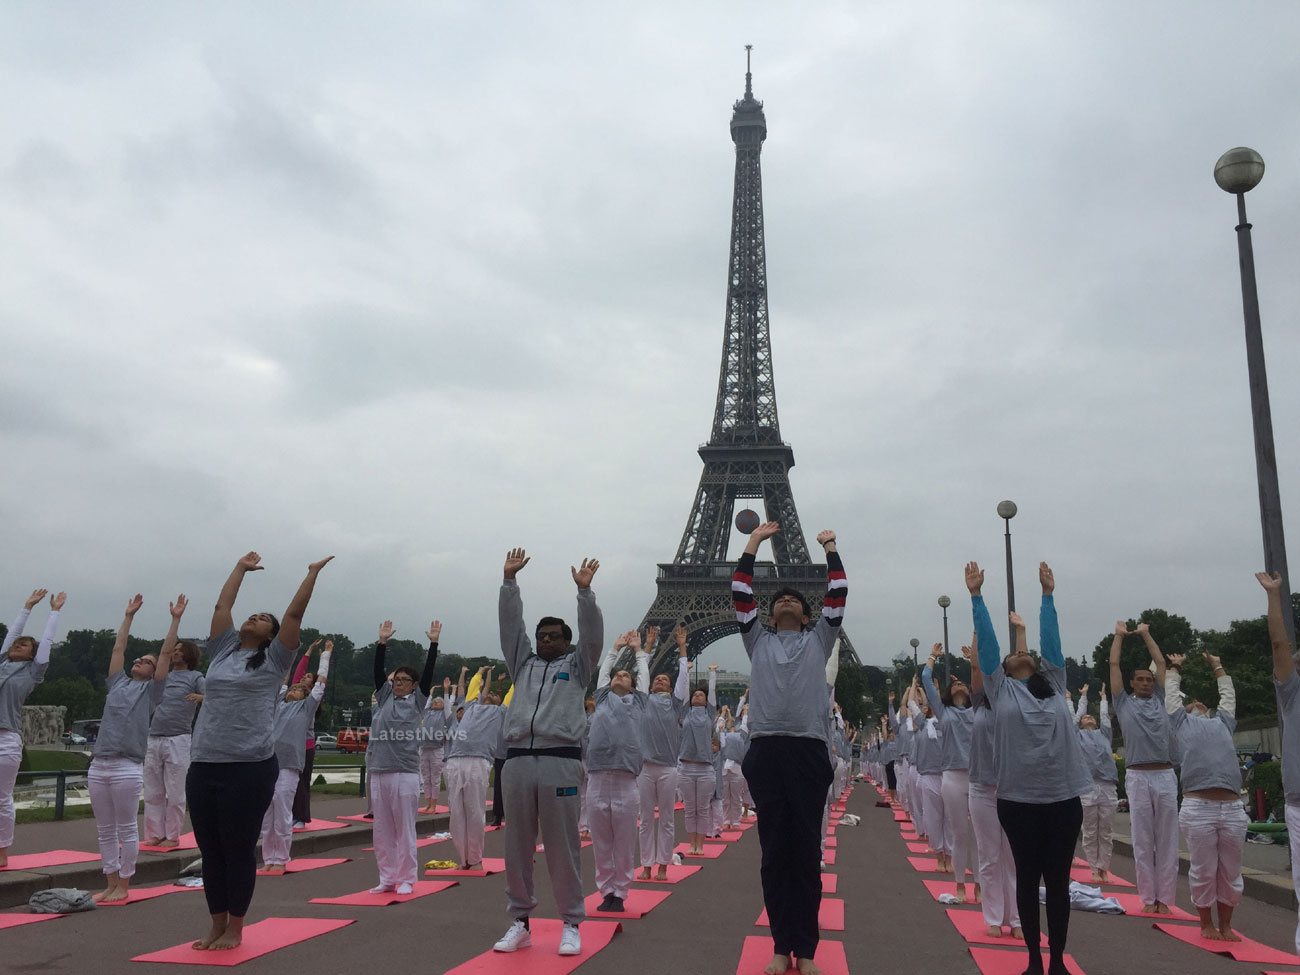 Euro Cup and Yoga Festival at Eiffel Tower Rocked Paris - Picture 3